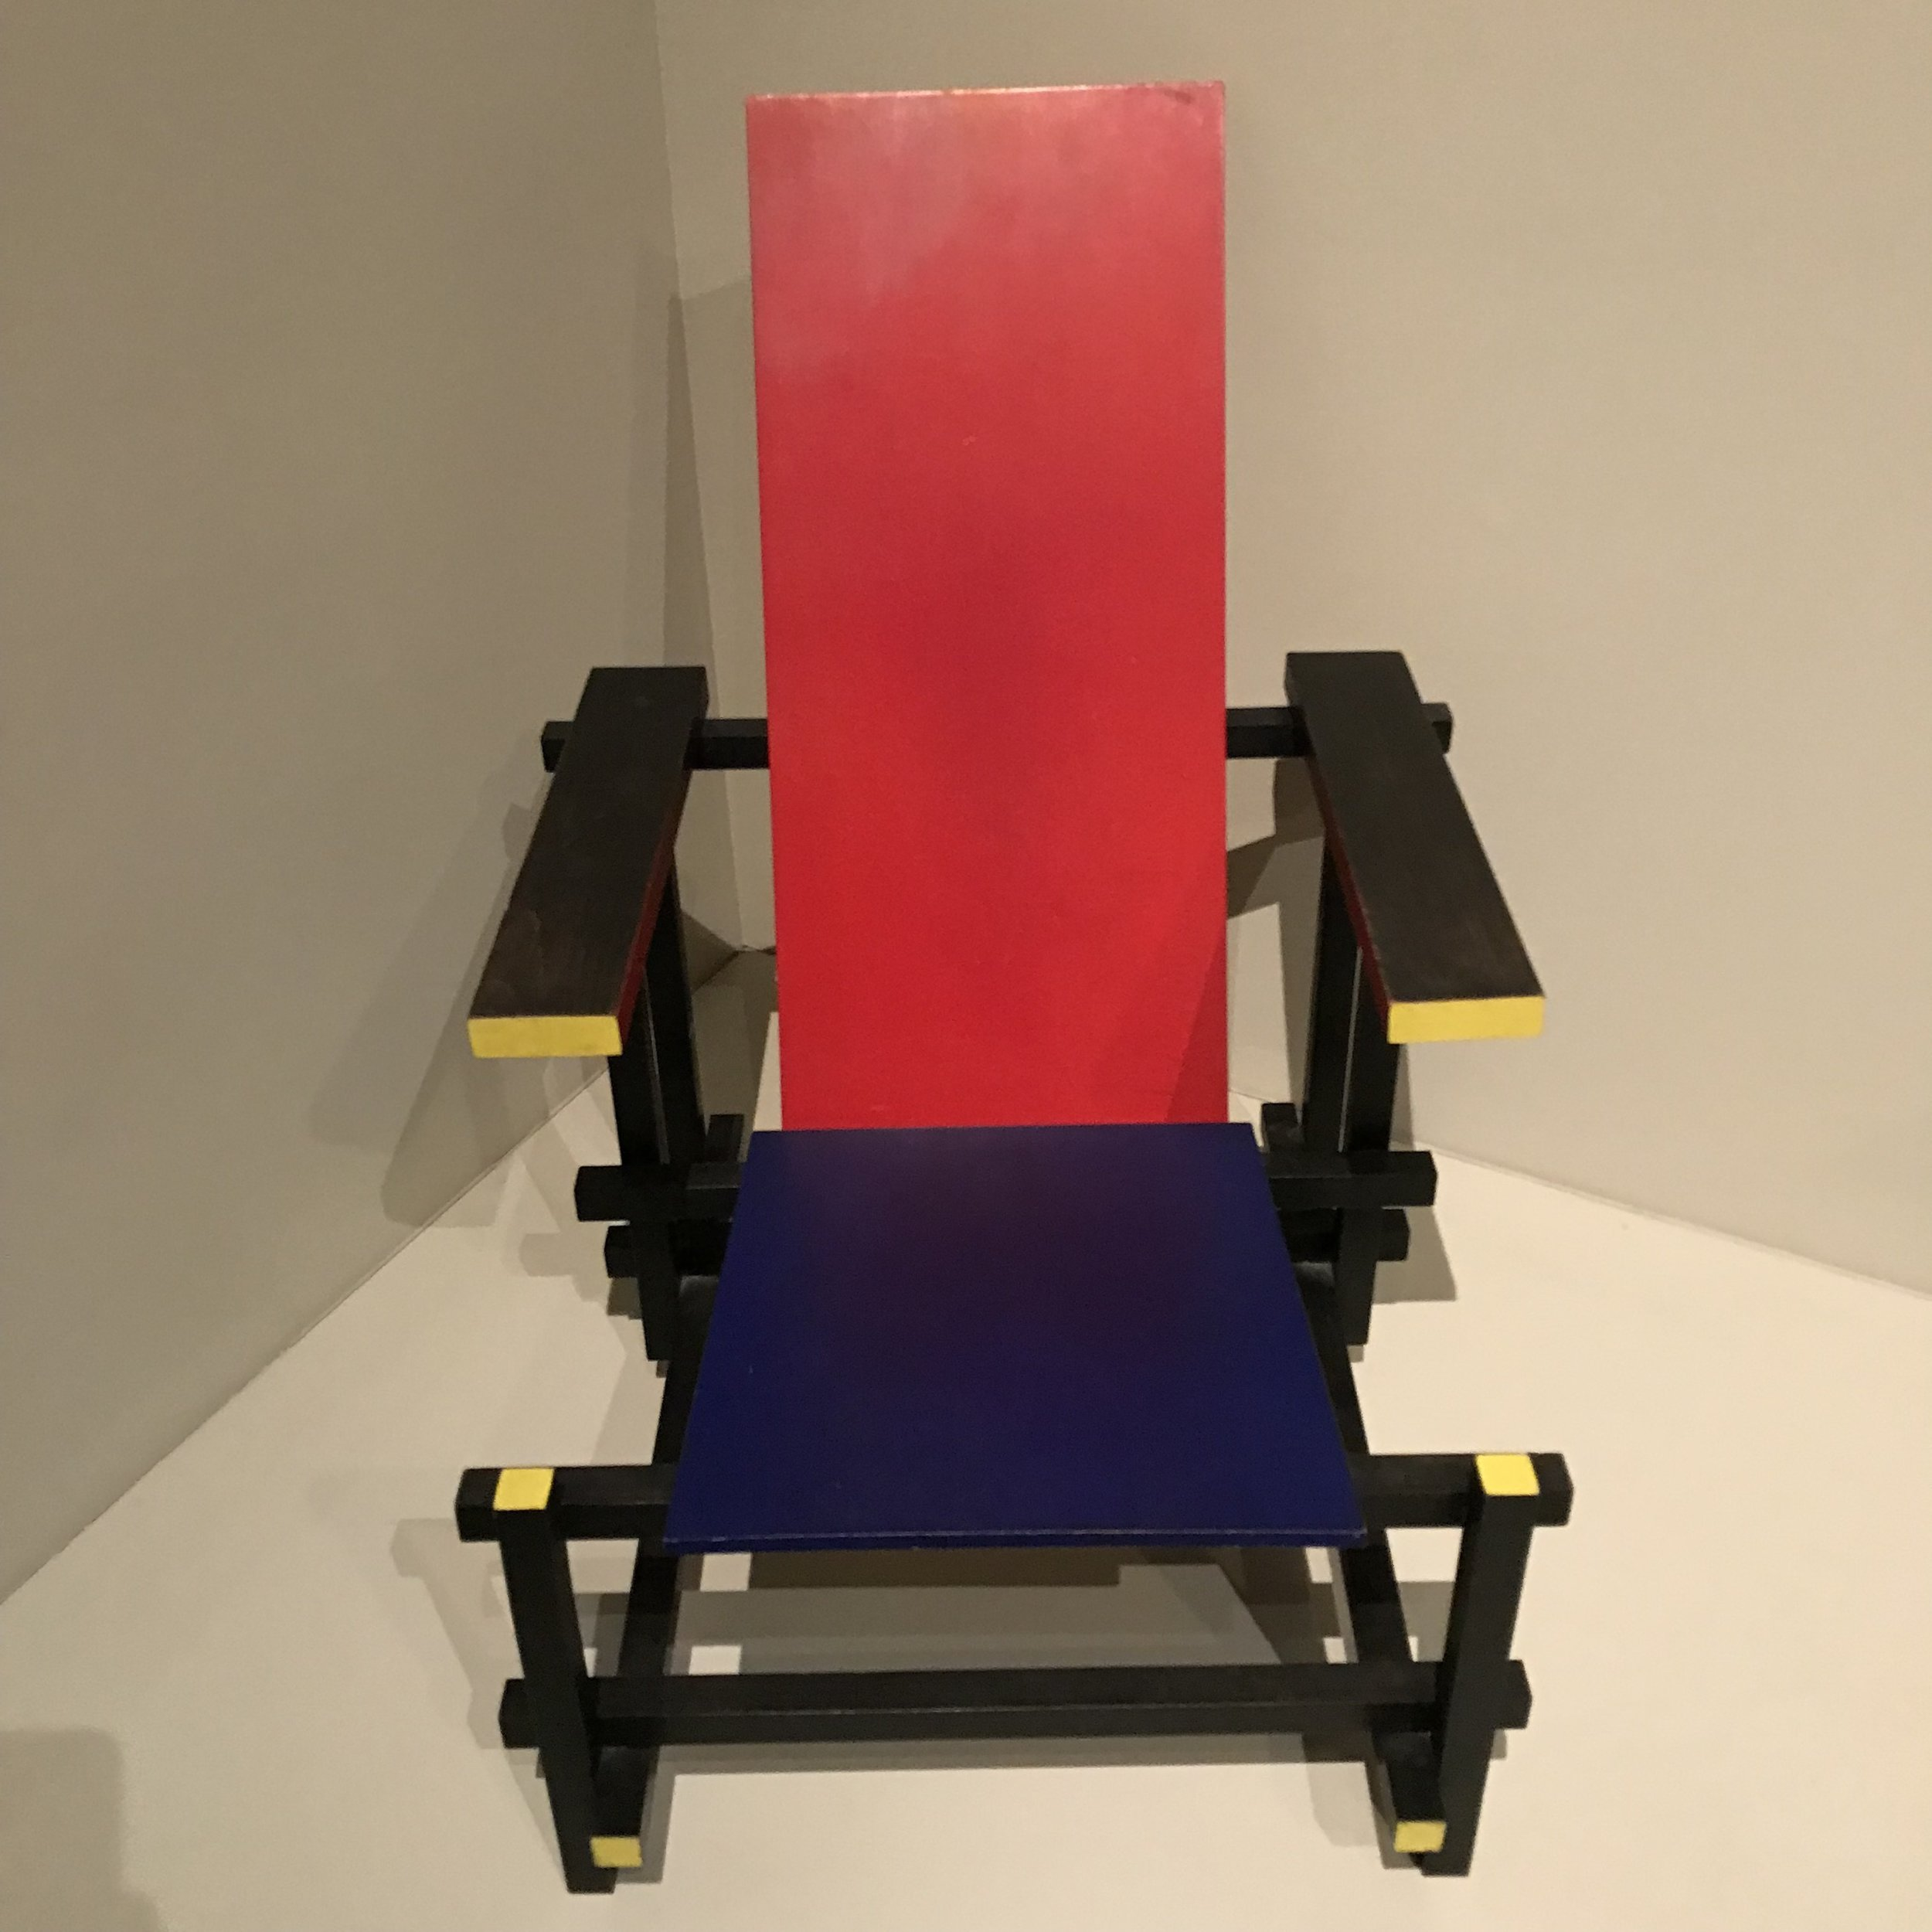 2017-12-26  Photo 15  Red-Blue Chair (designed in 1918 and manufactured in 1950) designed by Gerrit Rietveld (1888 - 1964) of the Netherlands